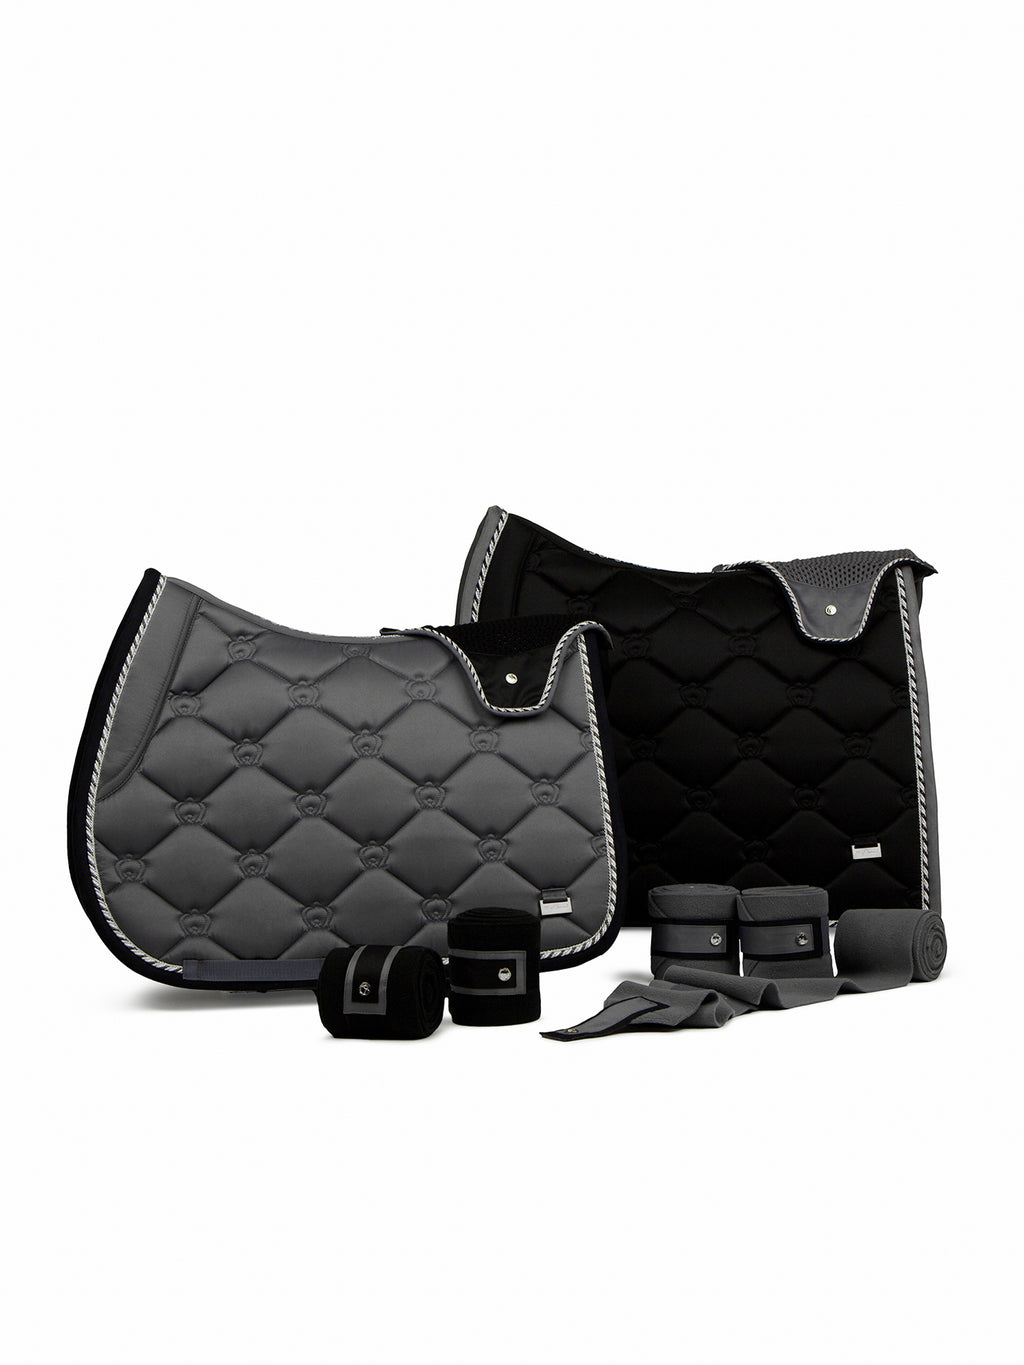 Ps of Sweden Fly Hat Anthracite - The Dressage Store